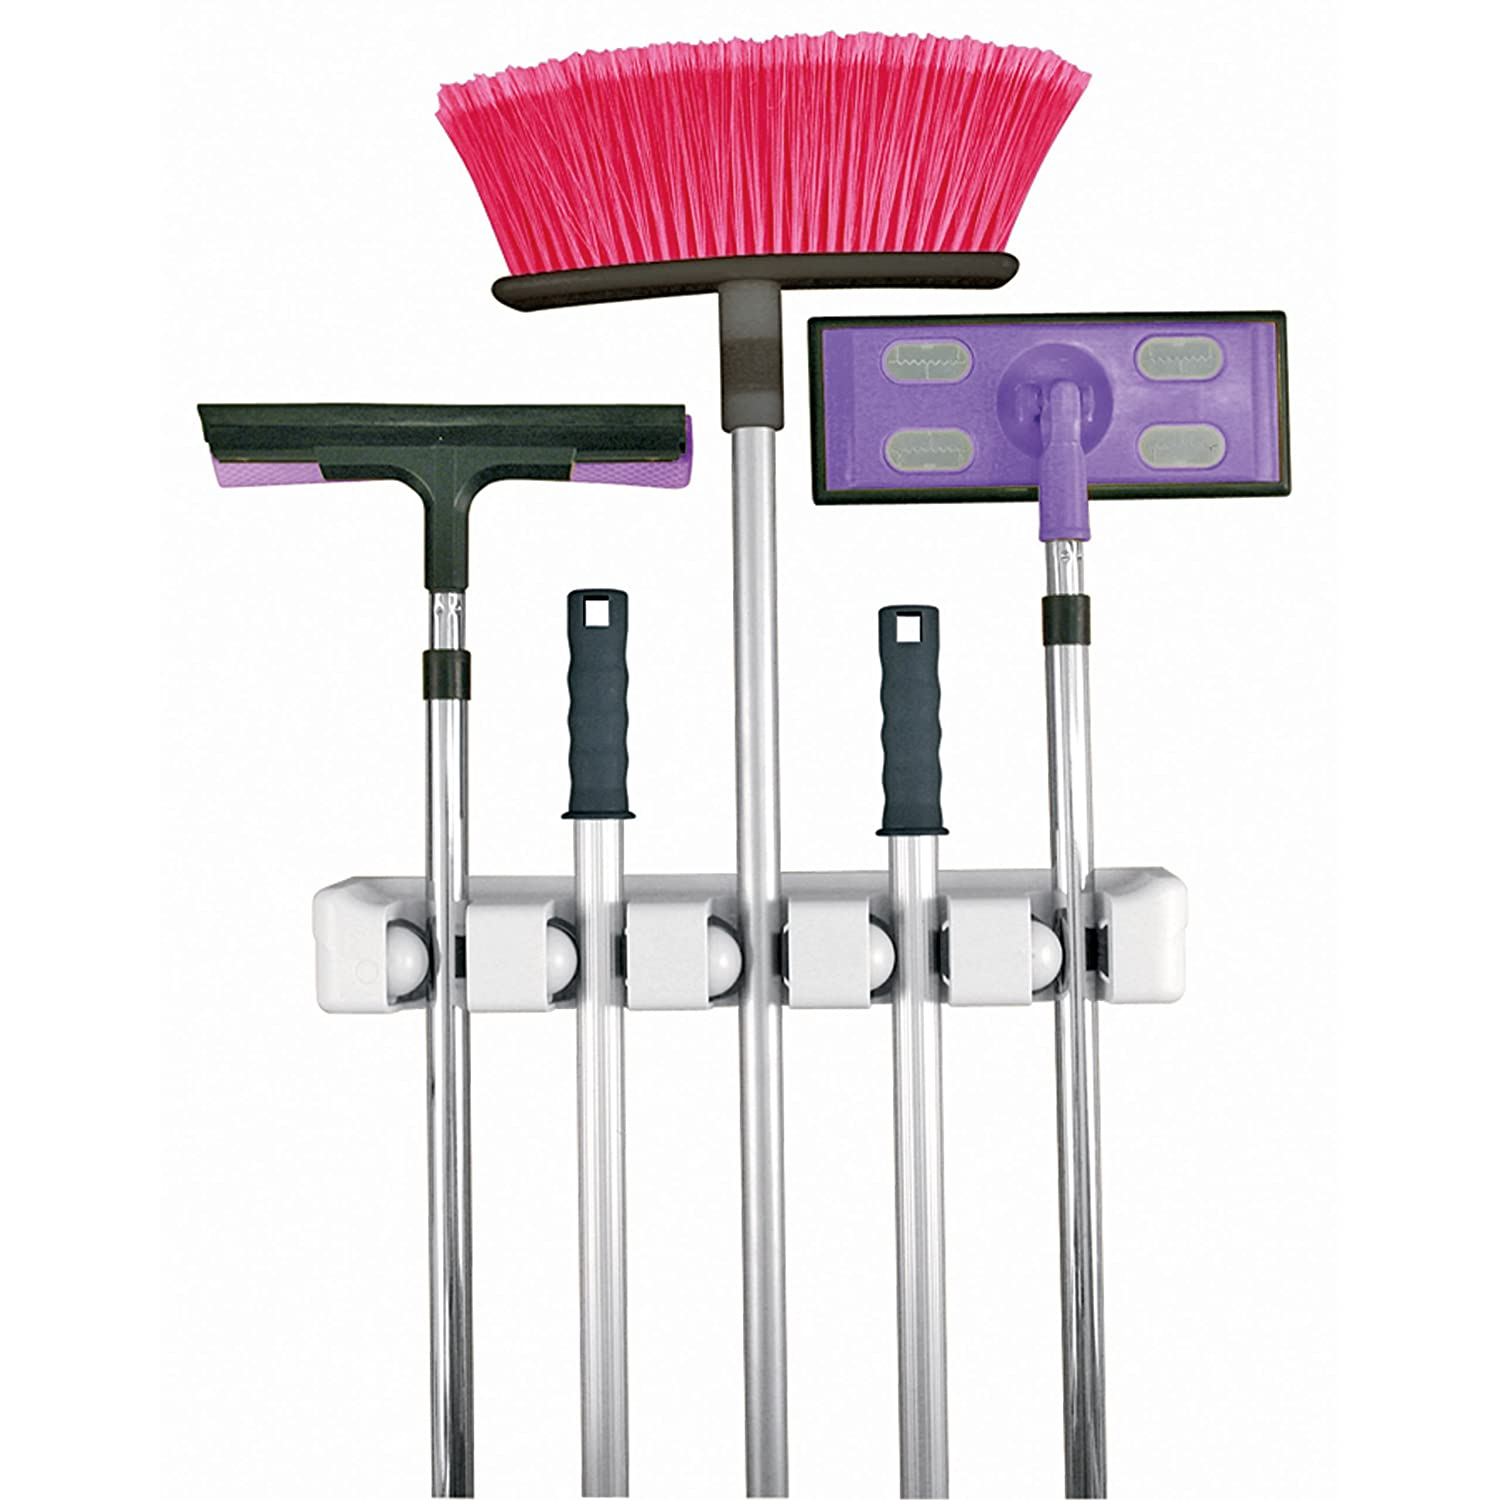 Utility Mop : Brush Broom MOP Handle Holder Organizer Laundry Utility Garage Wall ...